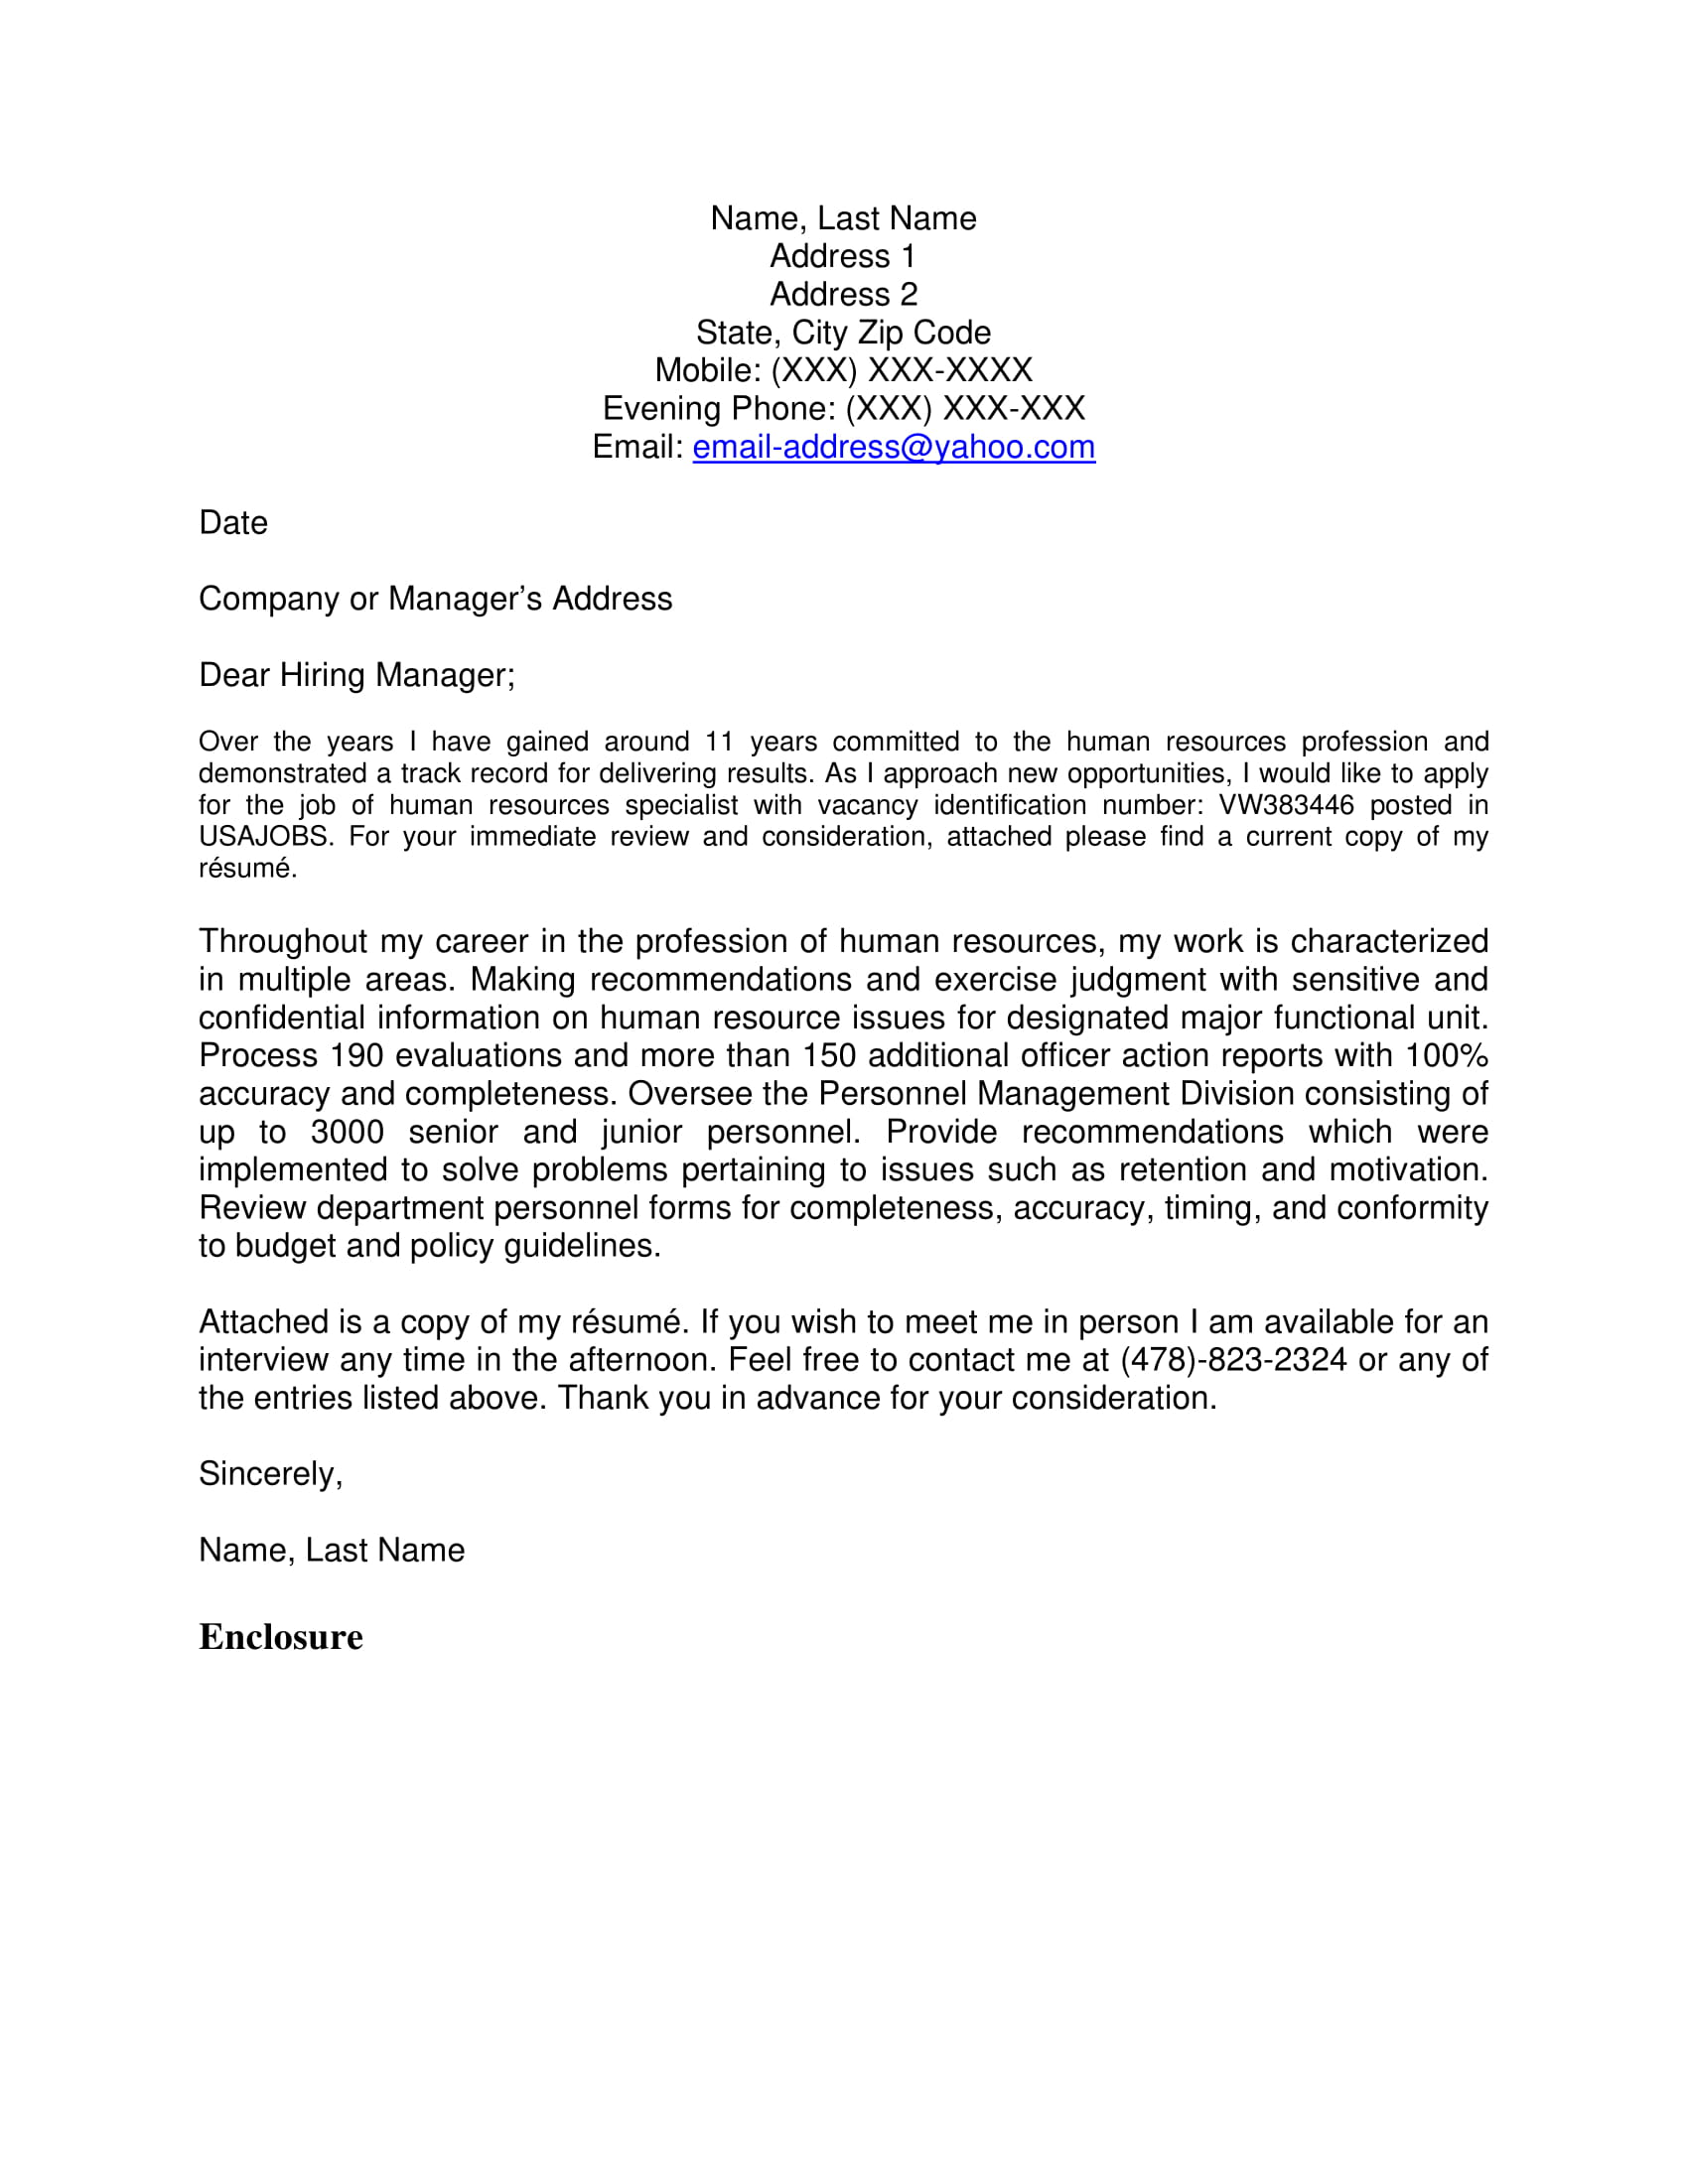 official cover letter for federal manager appliaction example